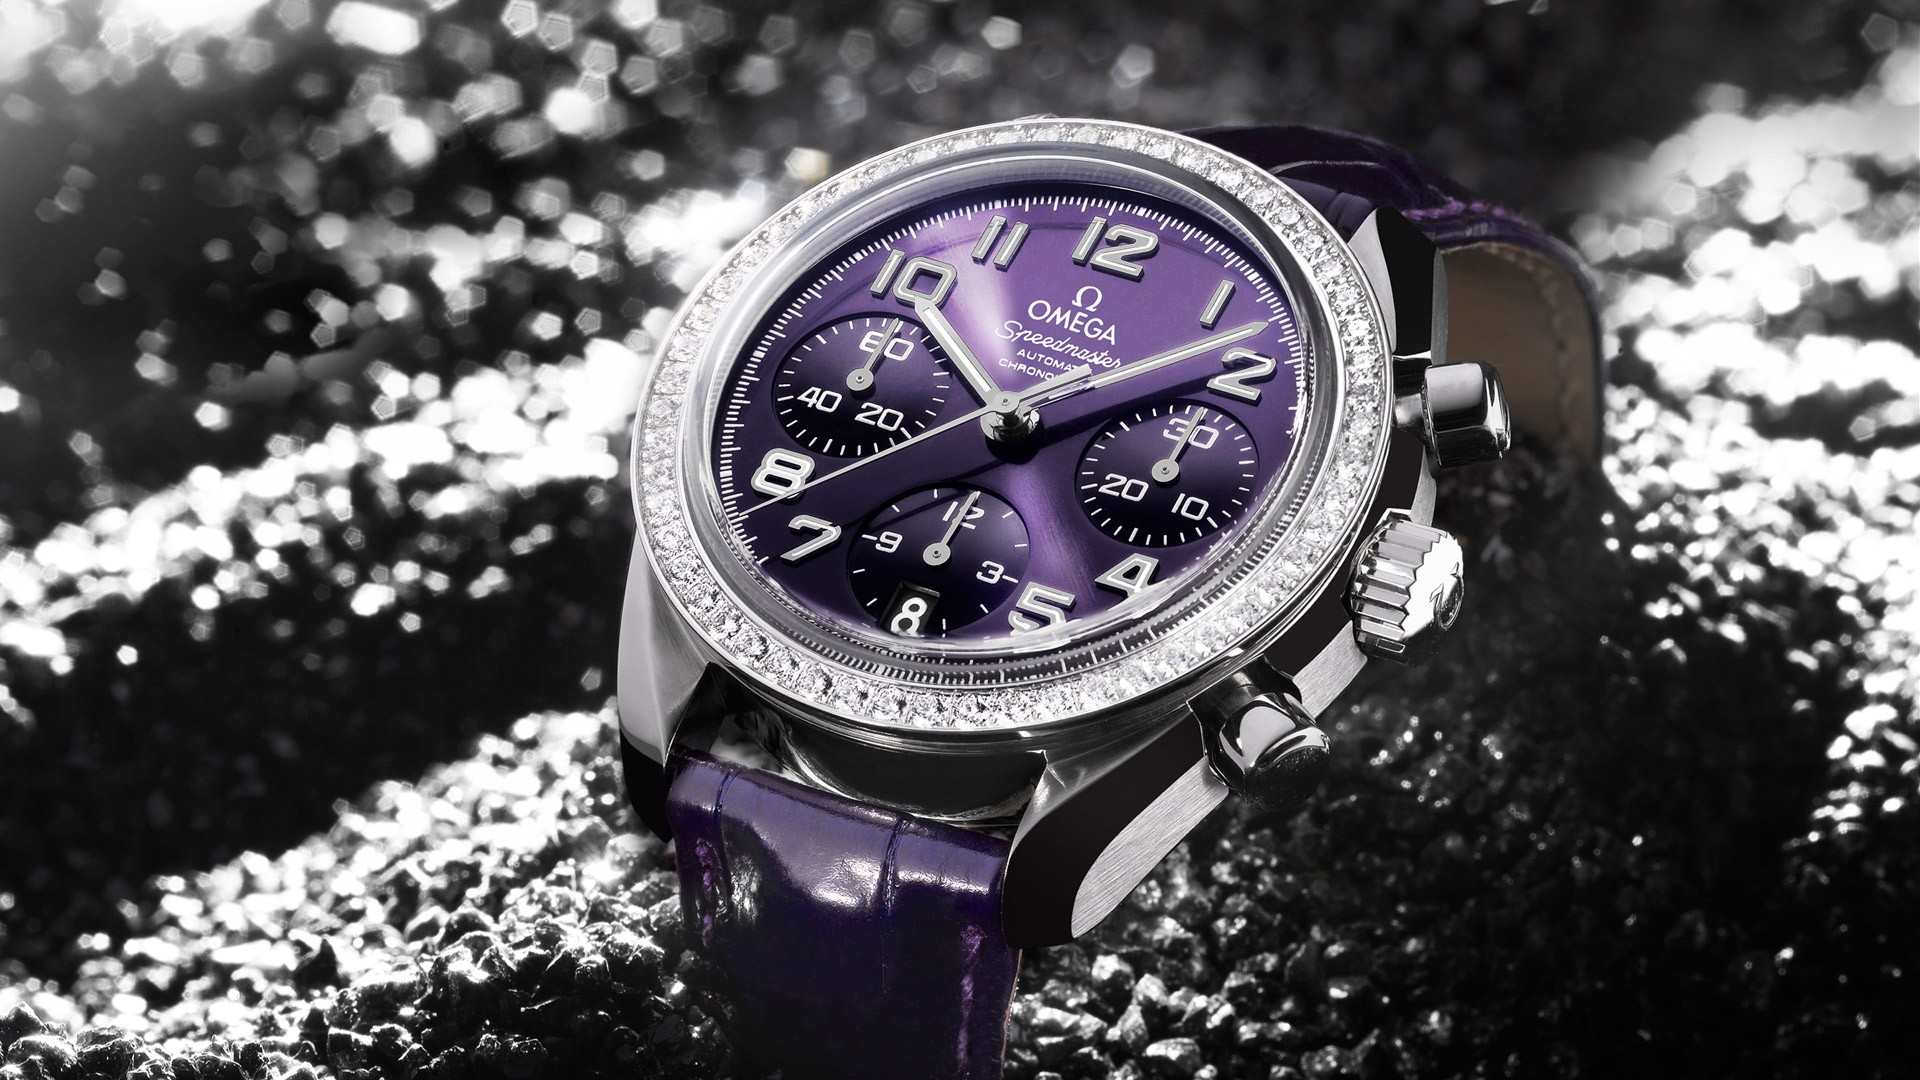 Omega watches brand close up gray omega purple watch 1920x1080